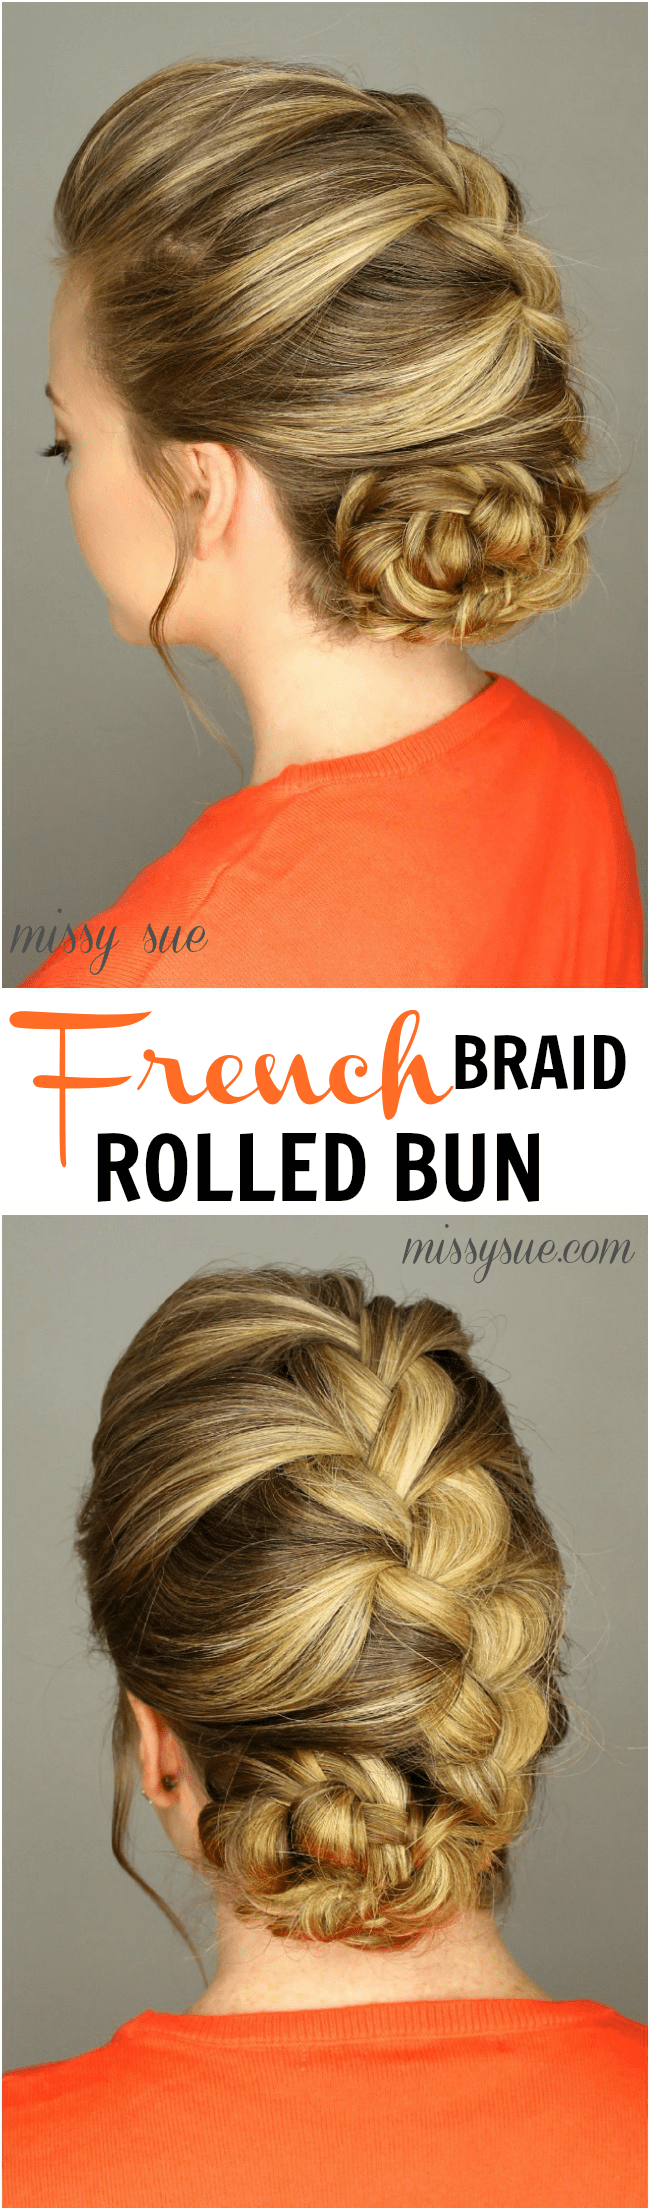 French Braid Rolled Bun | MissySue.com